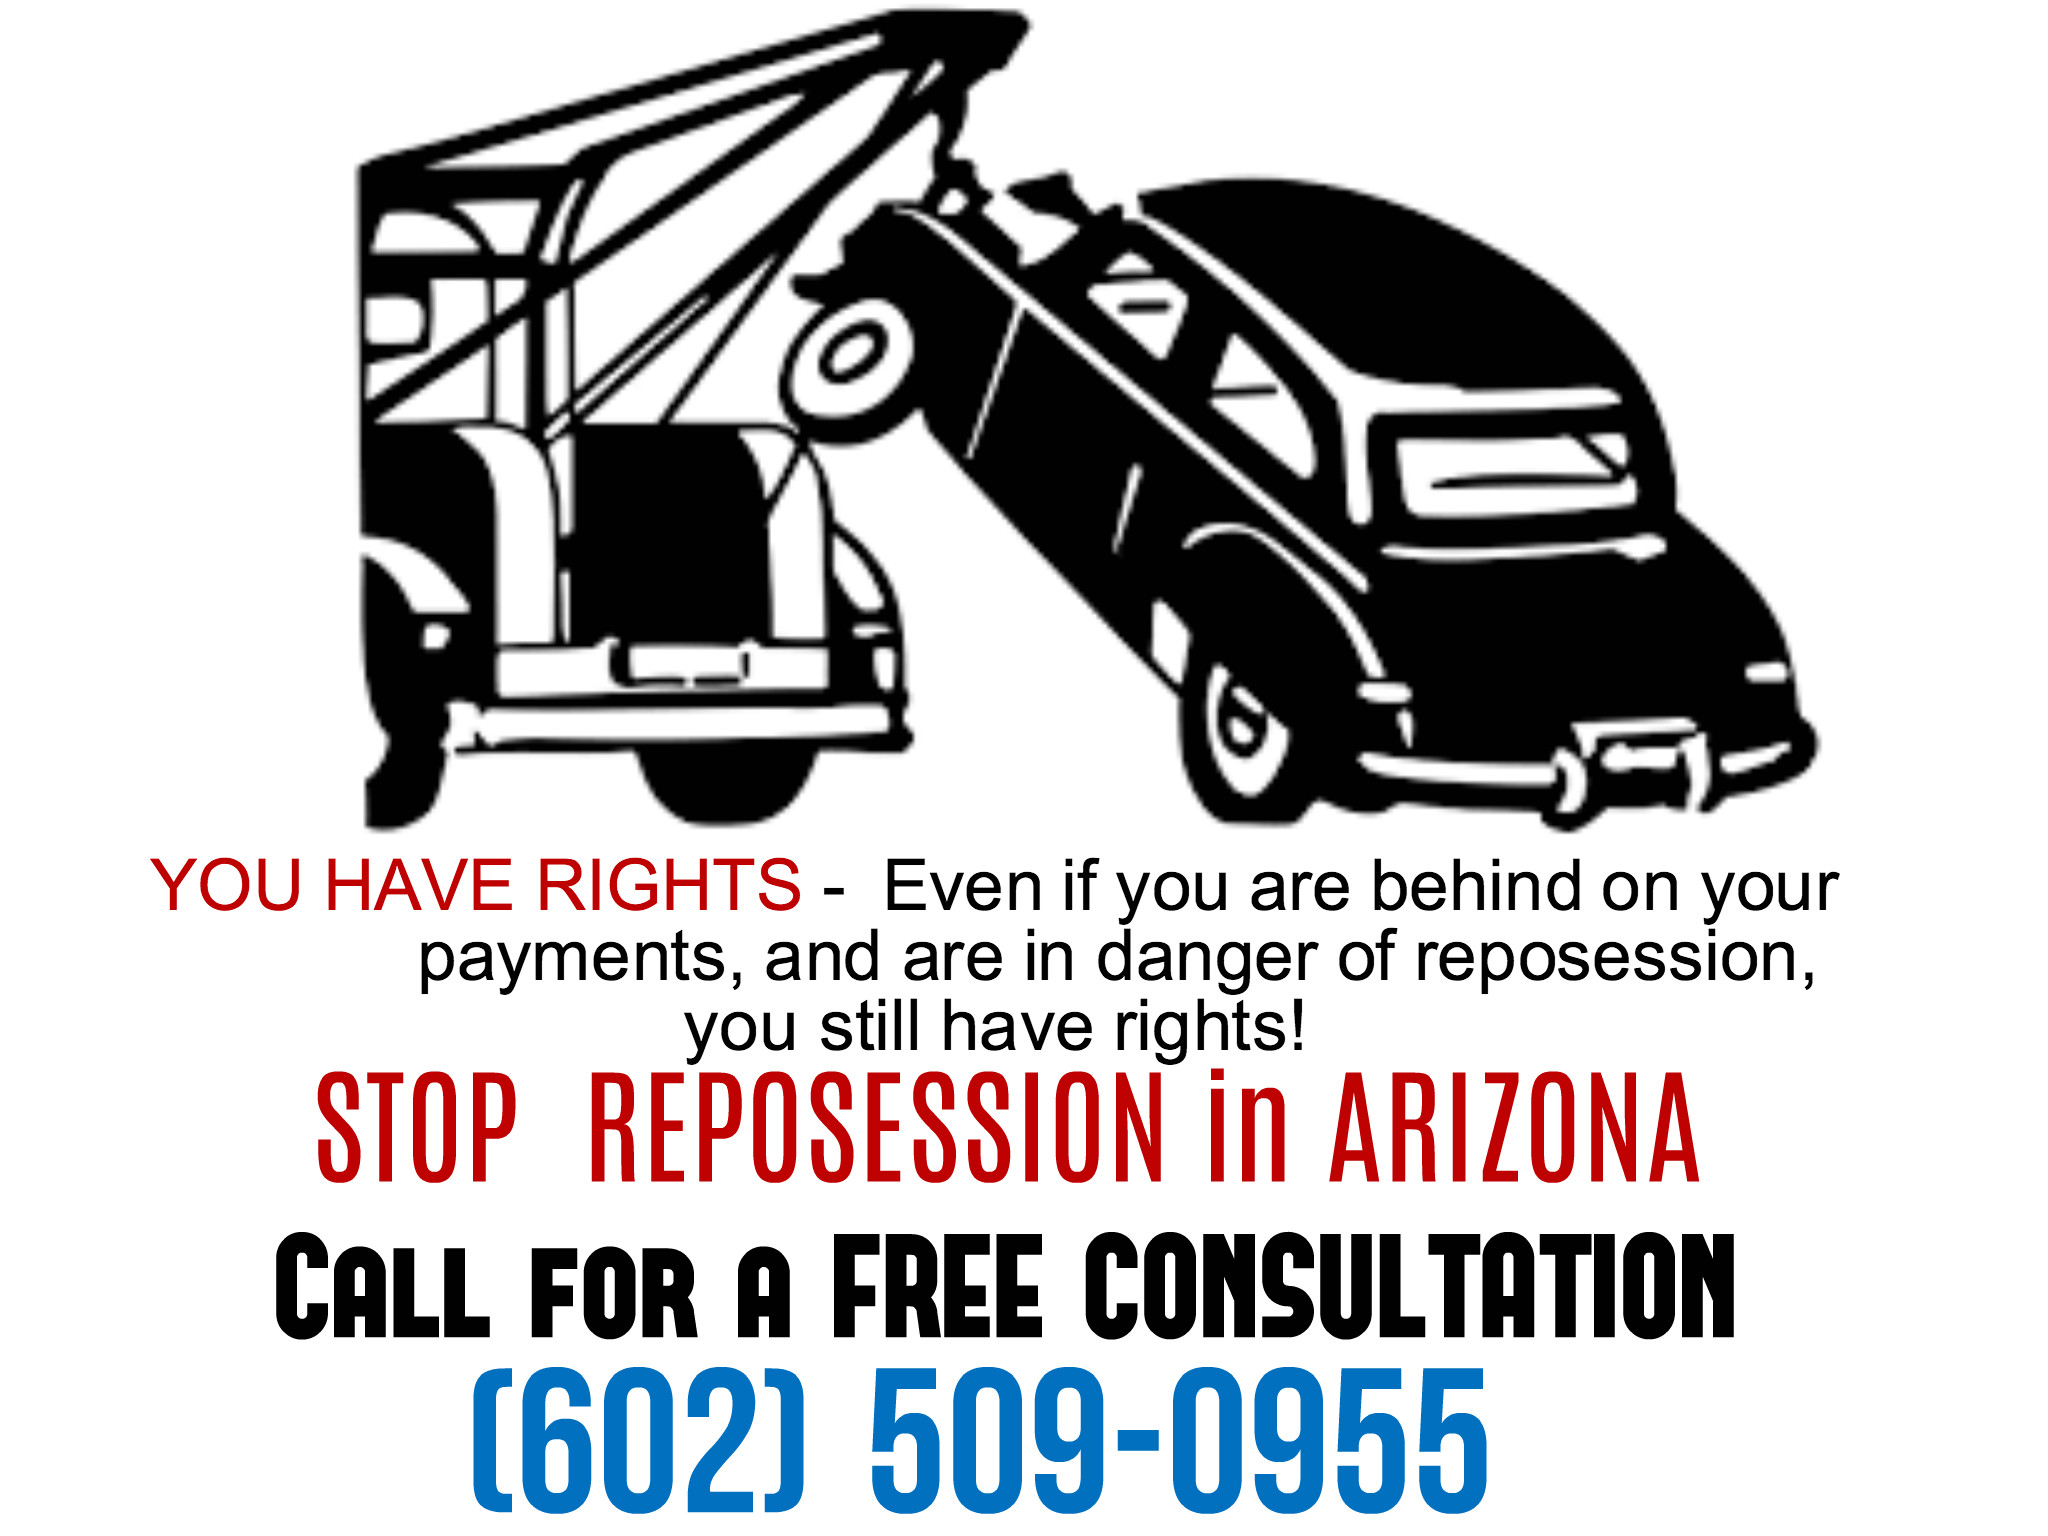 Stop Repossessions in Arizona, Phoenix Bankruptcy Lawyers